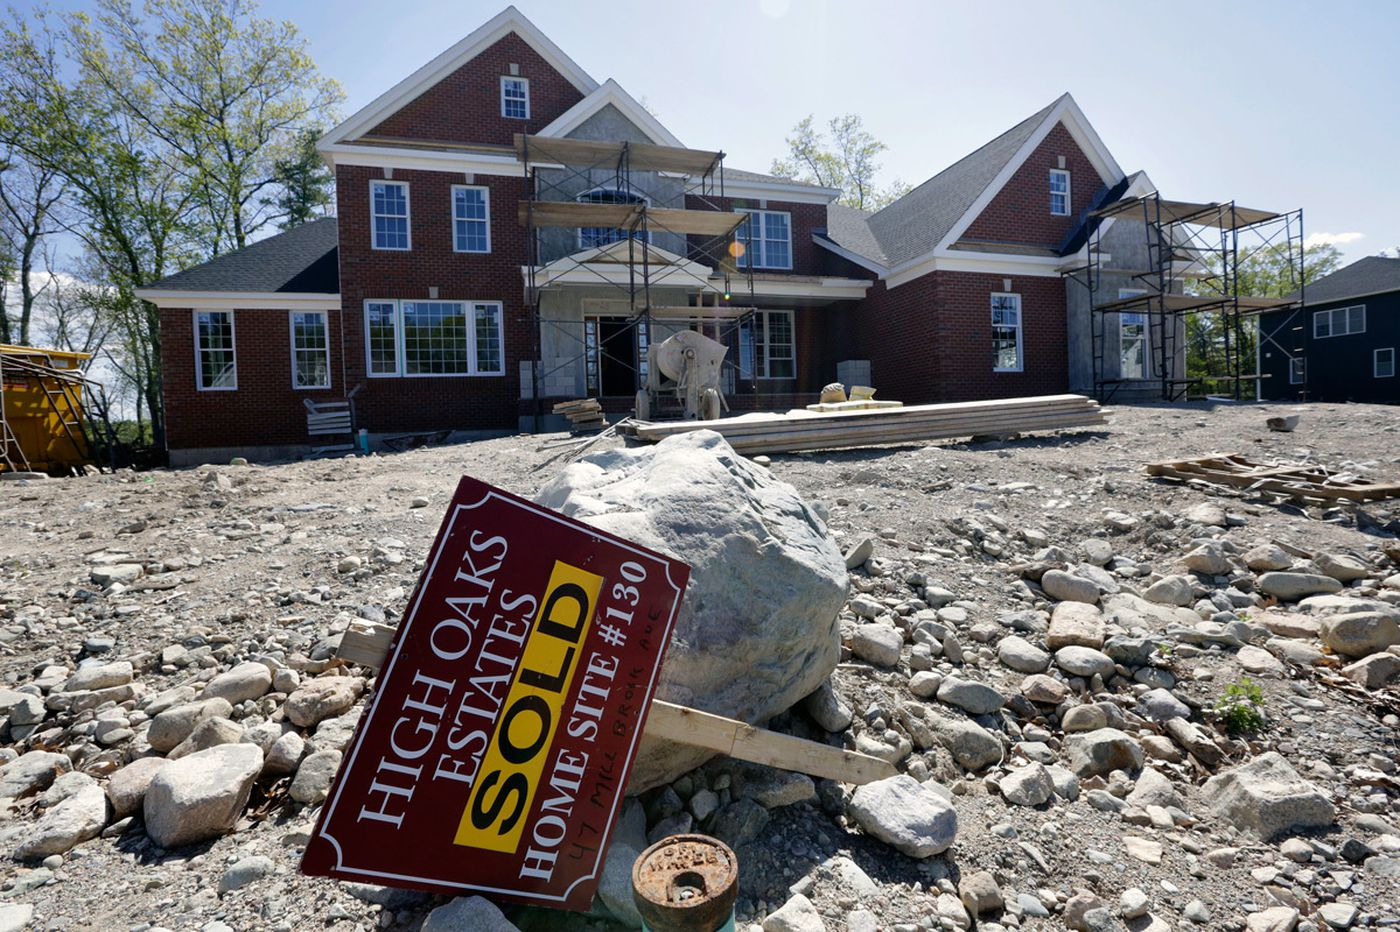 U.S. sales of new homes near nine-year high in July